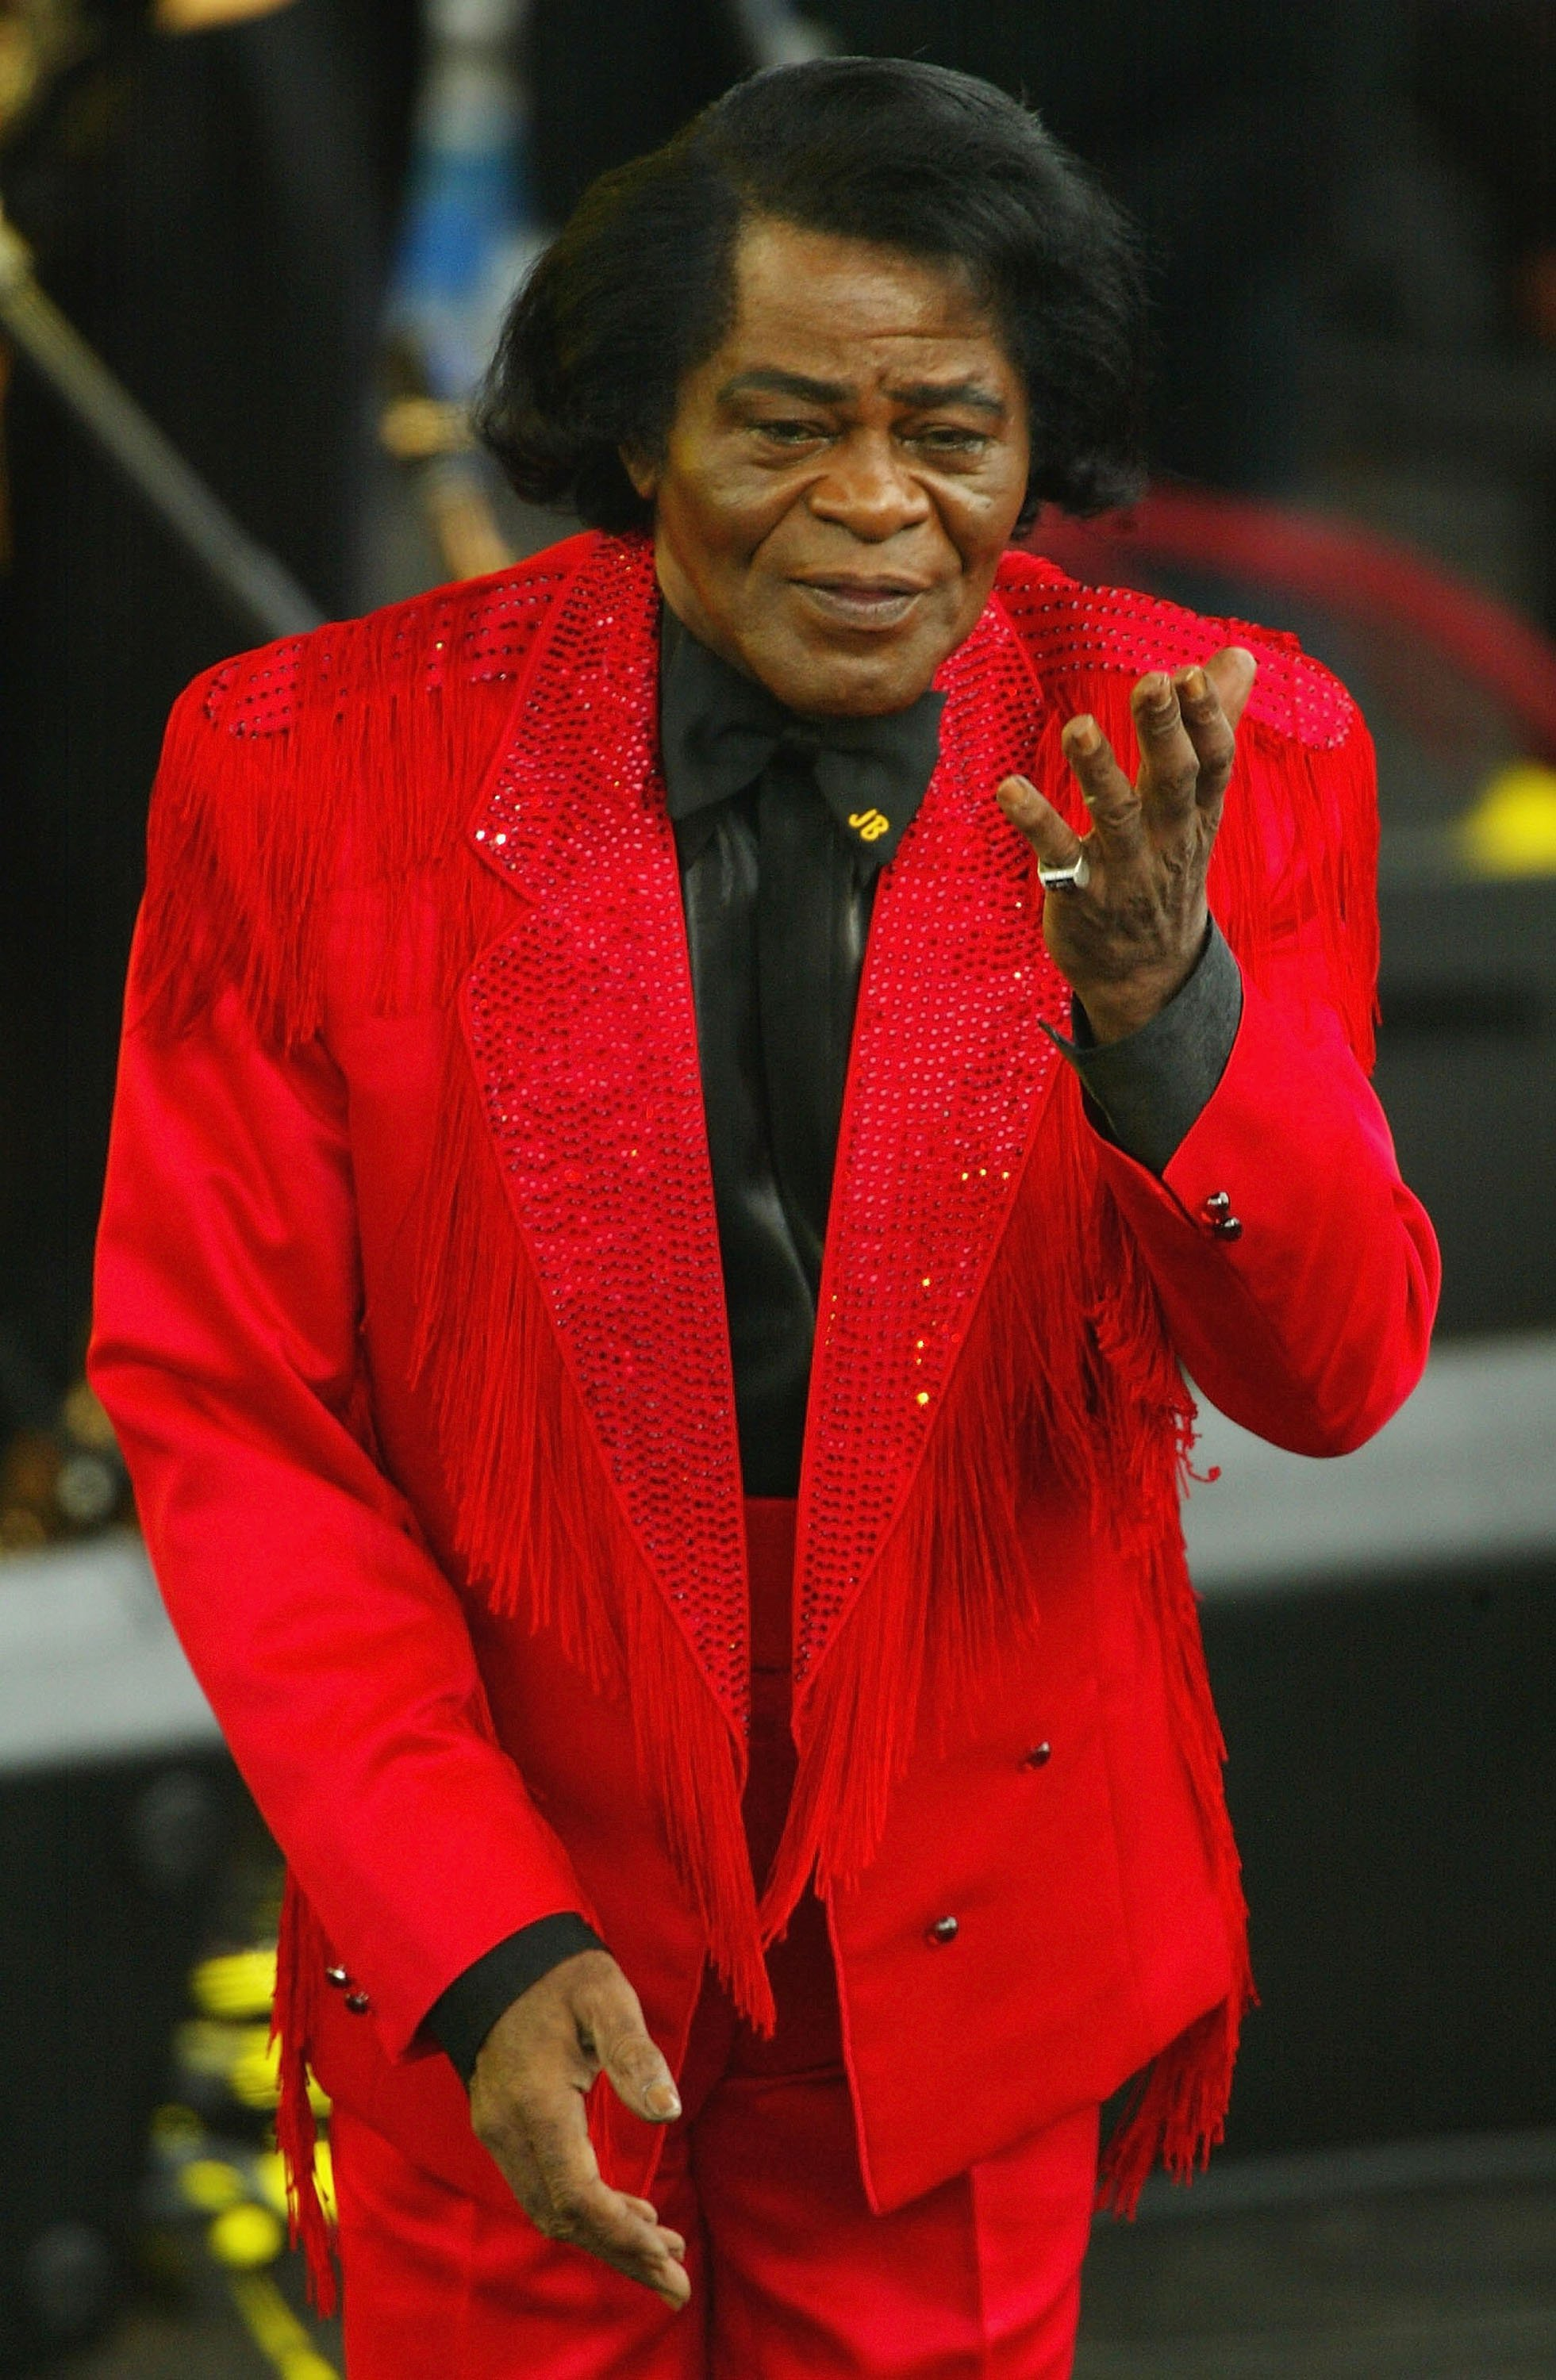 James Brown performs on stage at the Olympic Torch Concert held in The Mall on June 26, 2004.   Photo: Getty Images